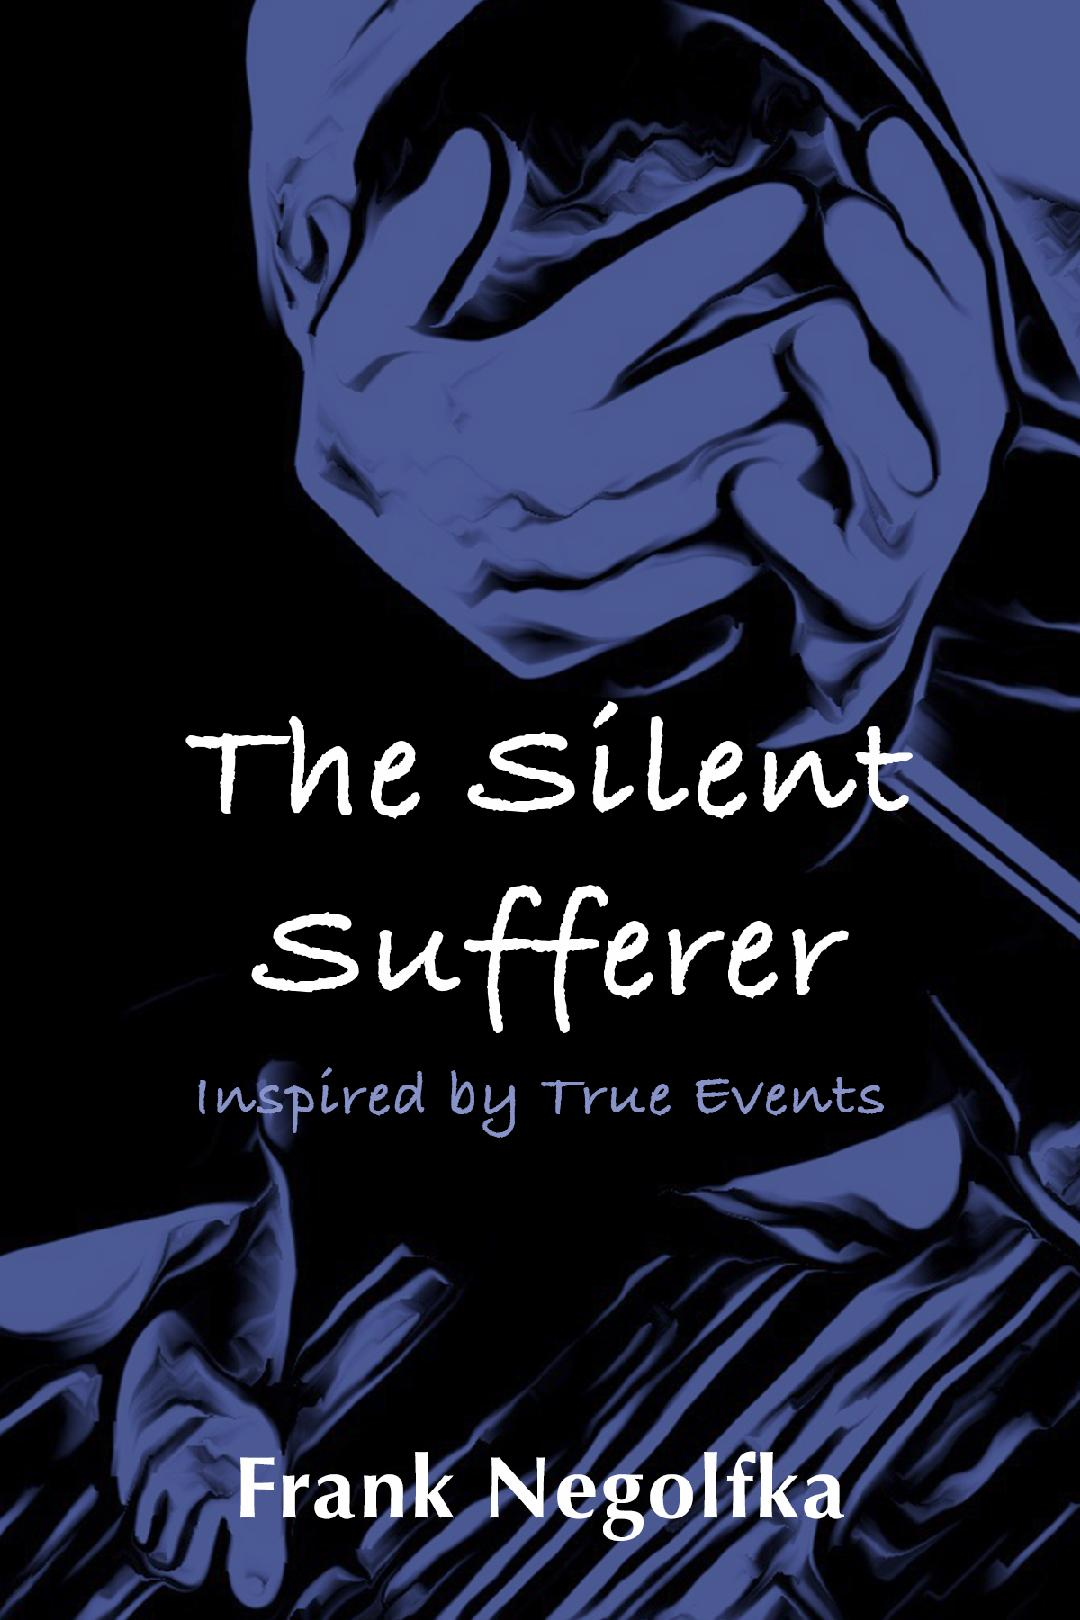 The Silent Sufferer by Frank Negolfka